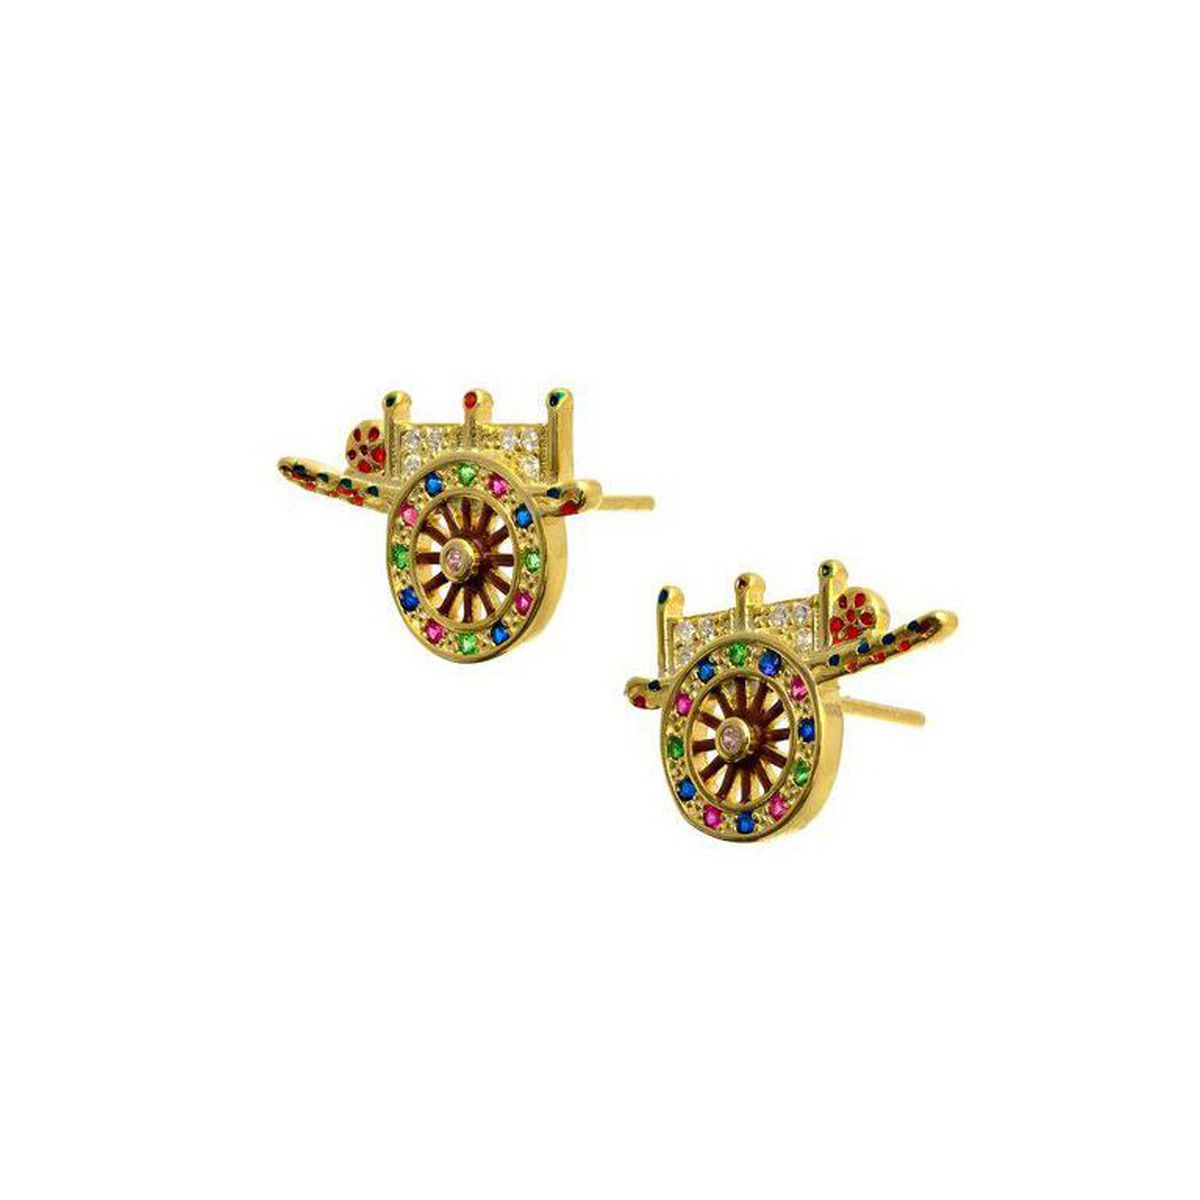 HANDCART GOLD EARRINGS Gold M'AMI SICILY JEWELS